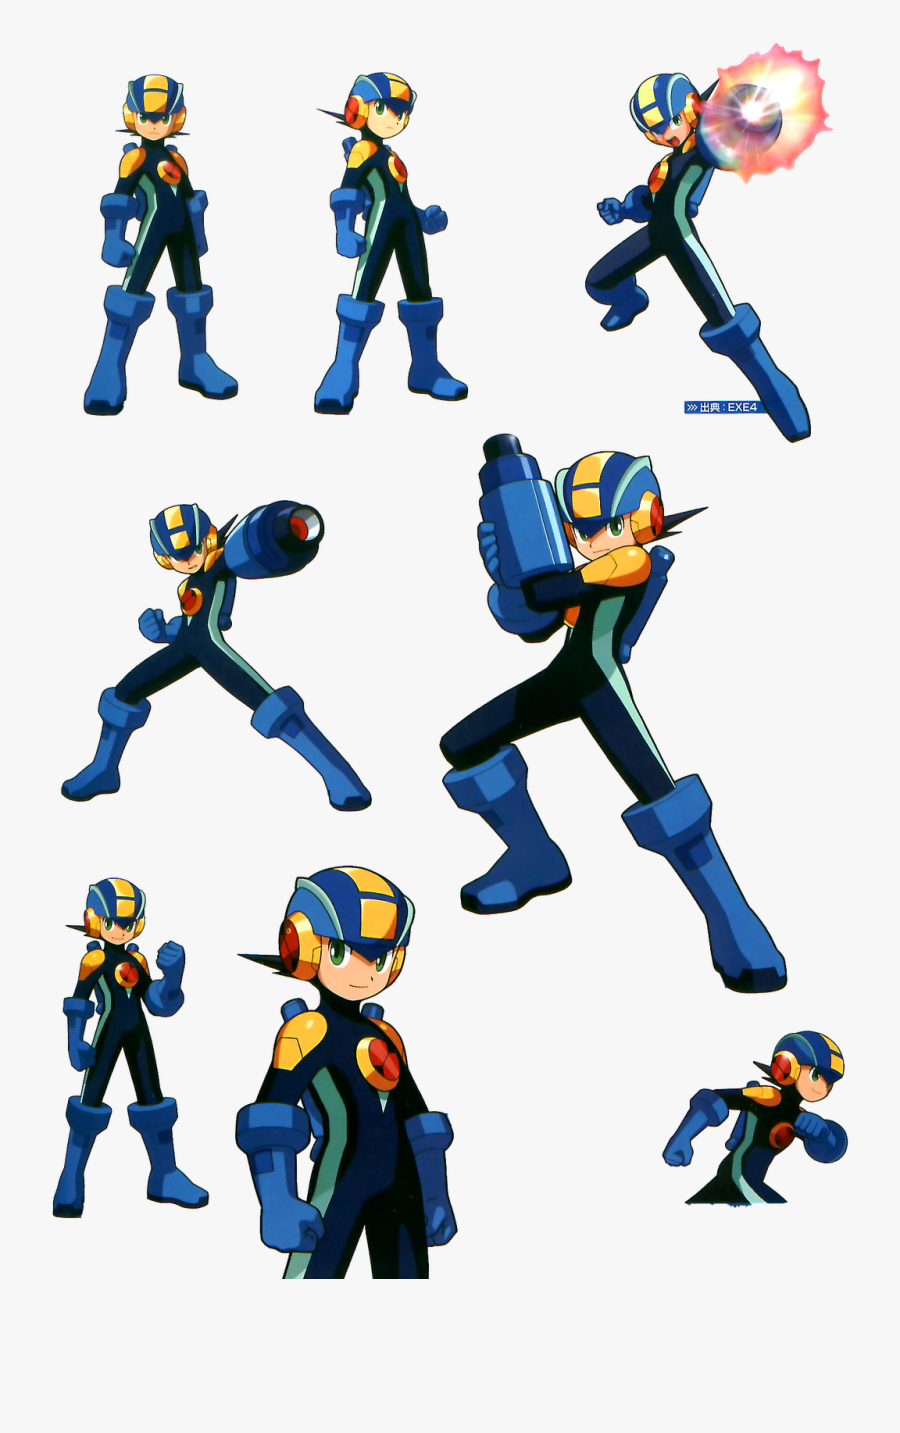 I Cleaned Up The Scan To The Best Of My Ability And - Megaman Battle Network Megaman Official Art, Transparent Clipart